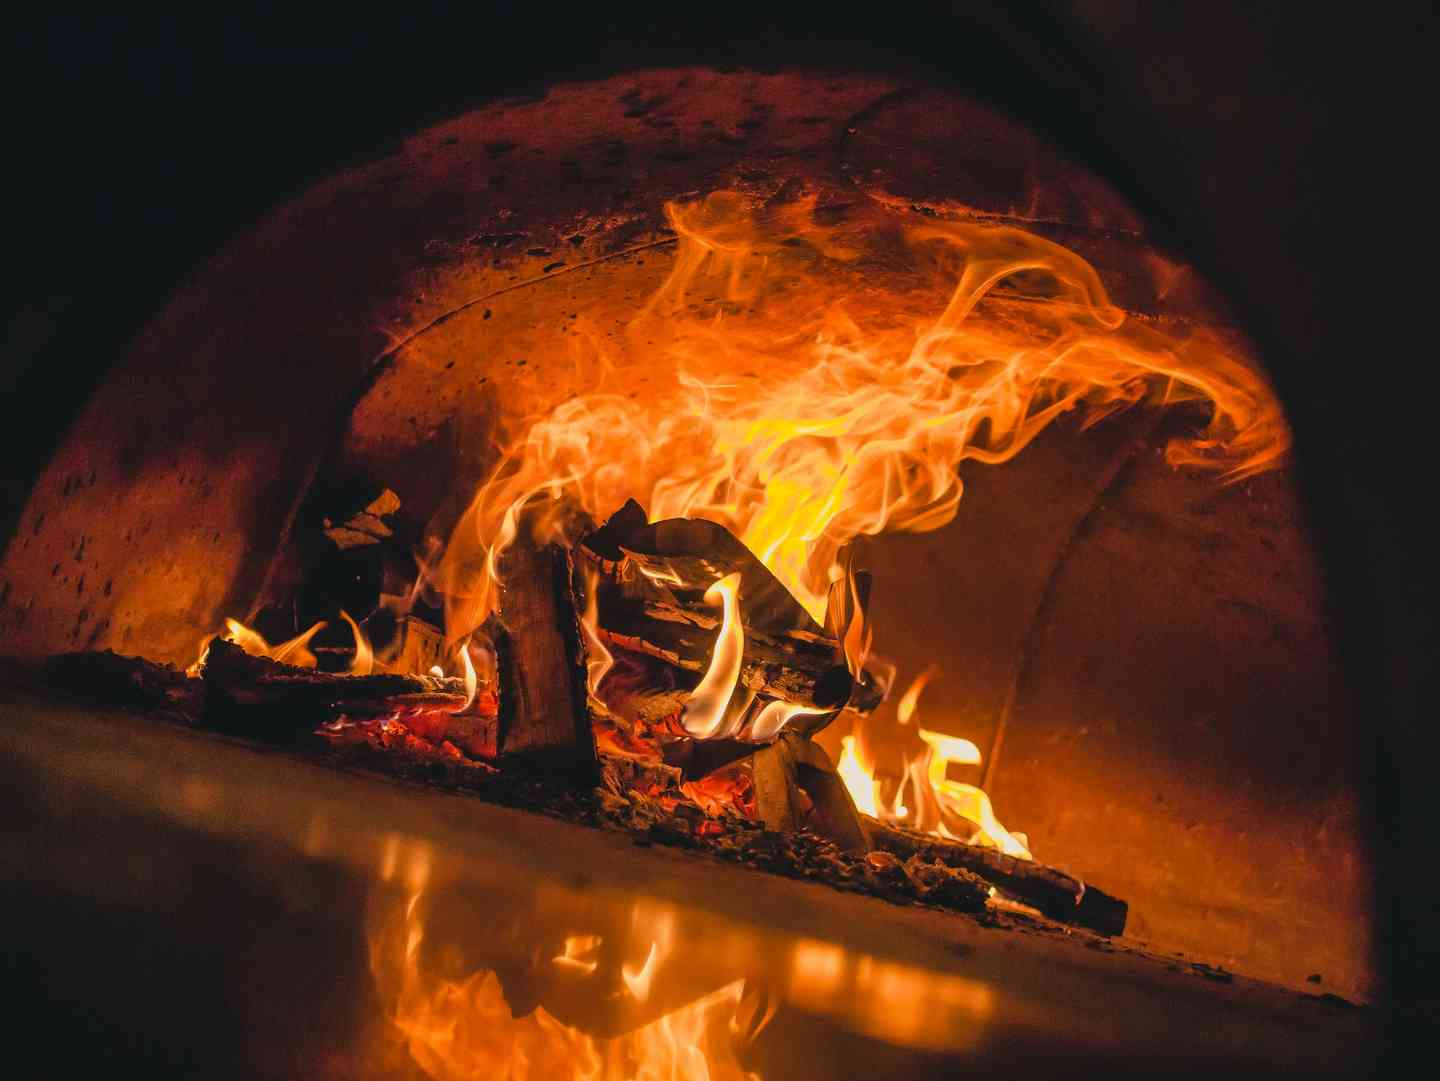 Wood burning in oven